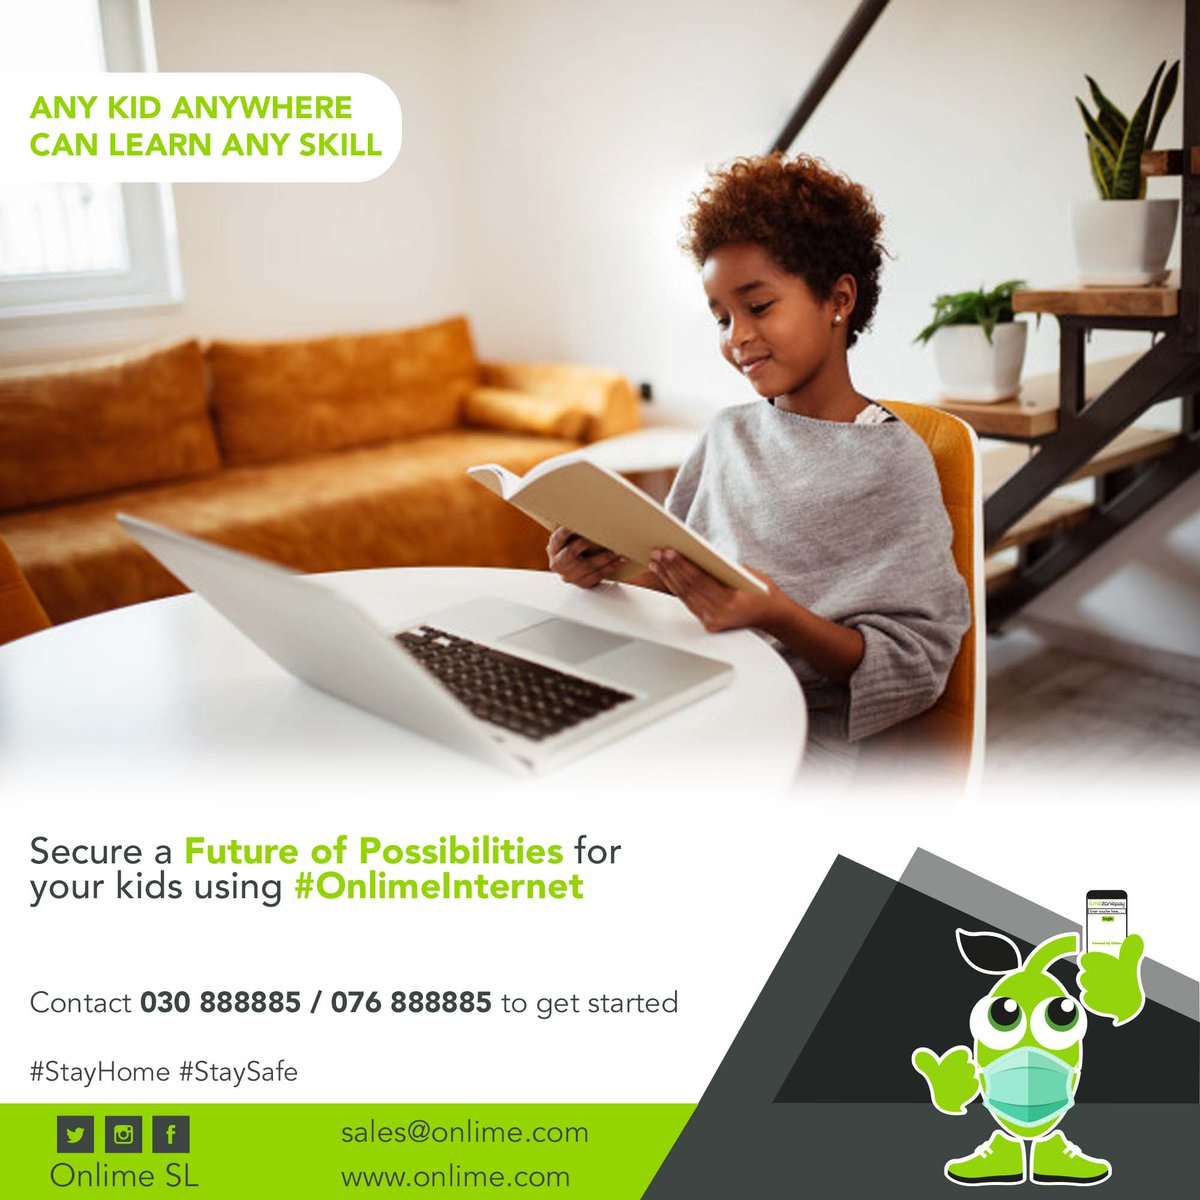 With the #Internet, kids today can learn things quicker than we do. Secure a Future of Possibilities for your kids using #OnlimeInternet  Call 076888885 / 030888885 to know more. #SierraLeone #Freetown #SaloneTwitter https://t.co/rUhRMn7CoT